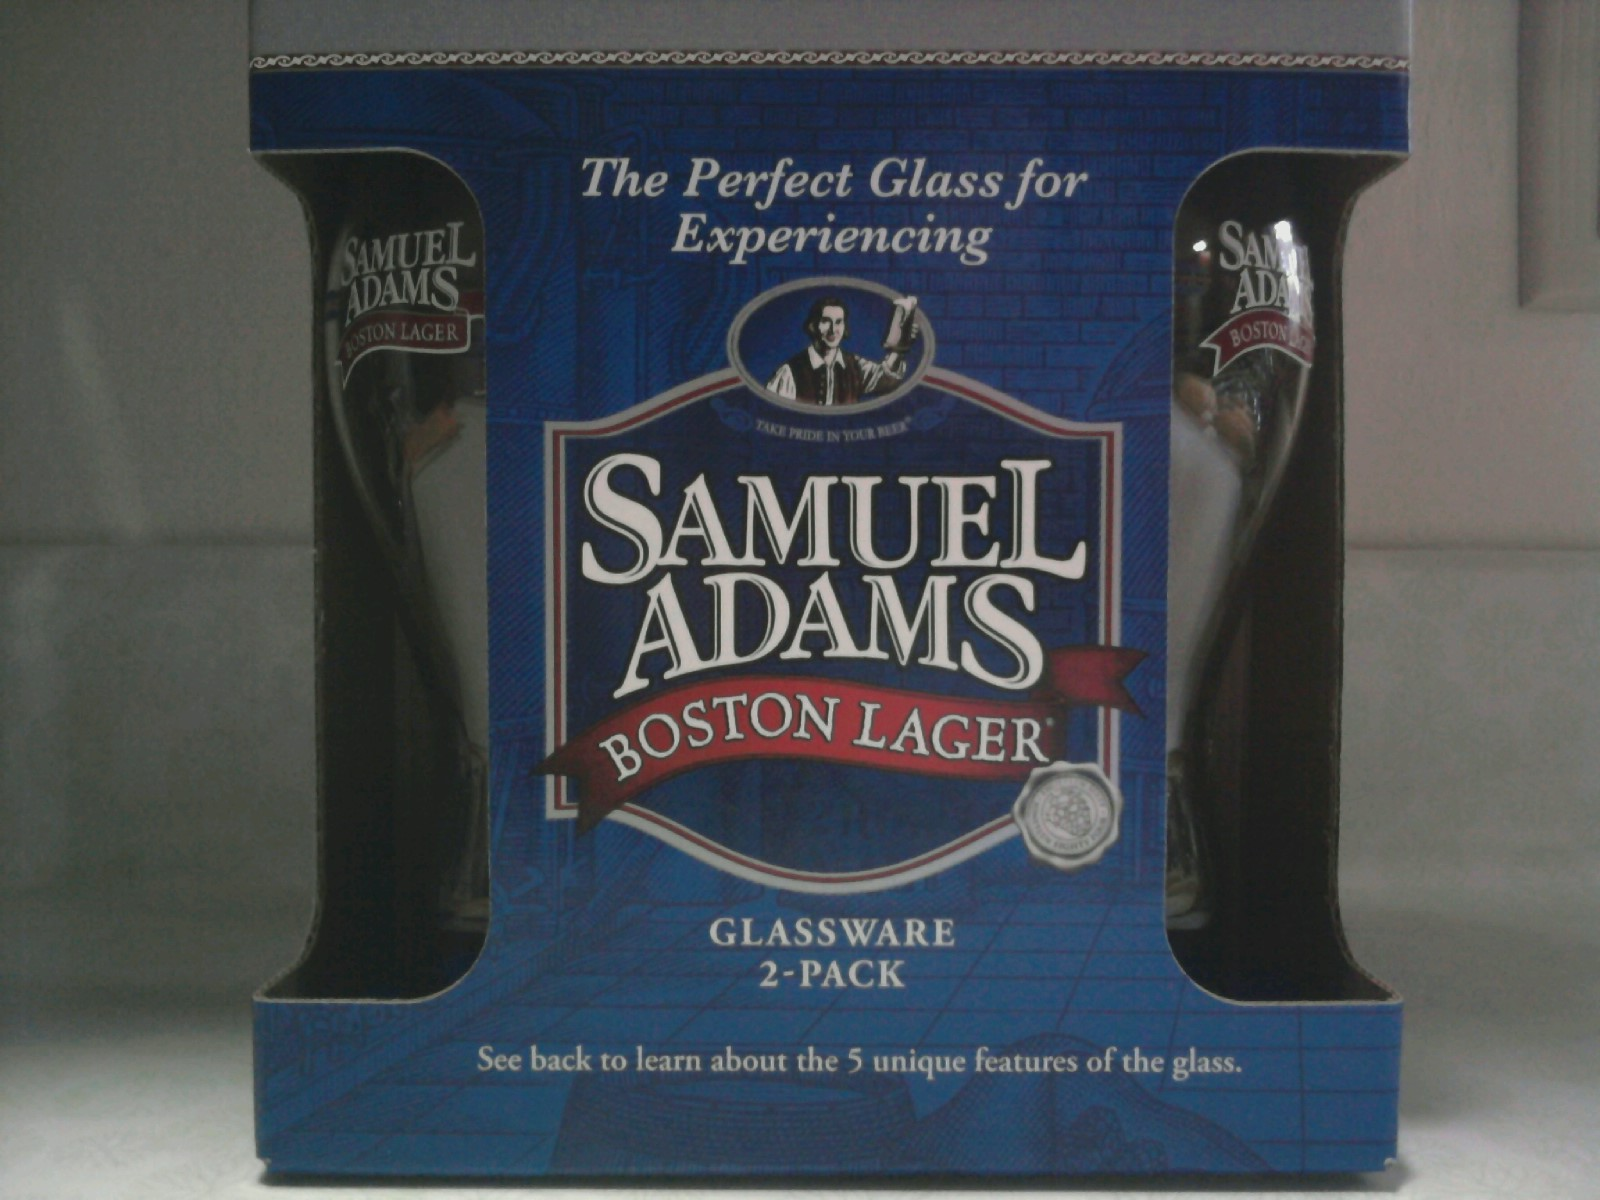 Samuel Adams Glasses For Sale at Retail StoresSamuel Adams Beer Glass